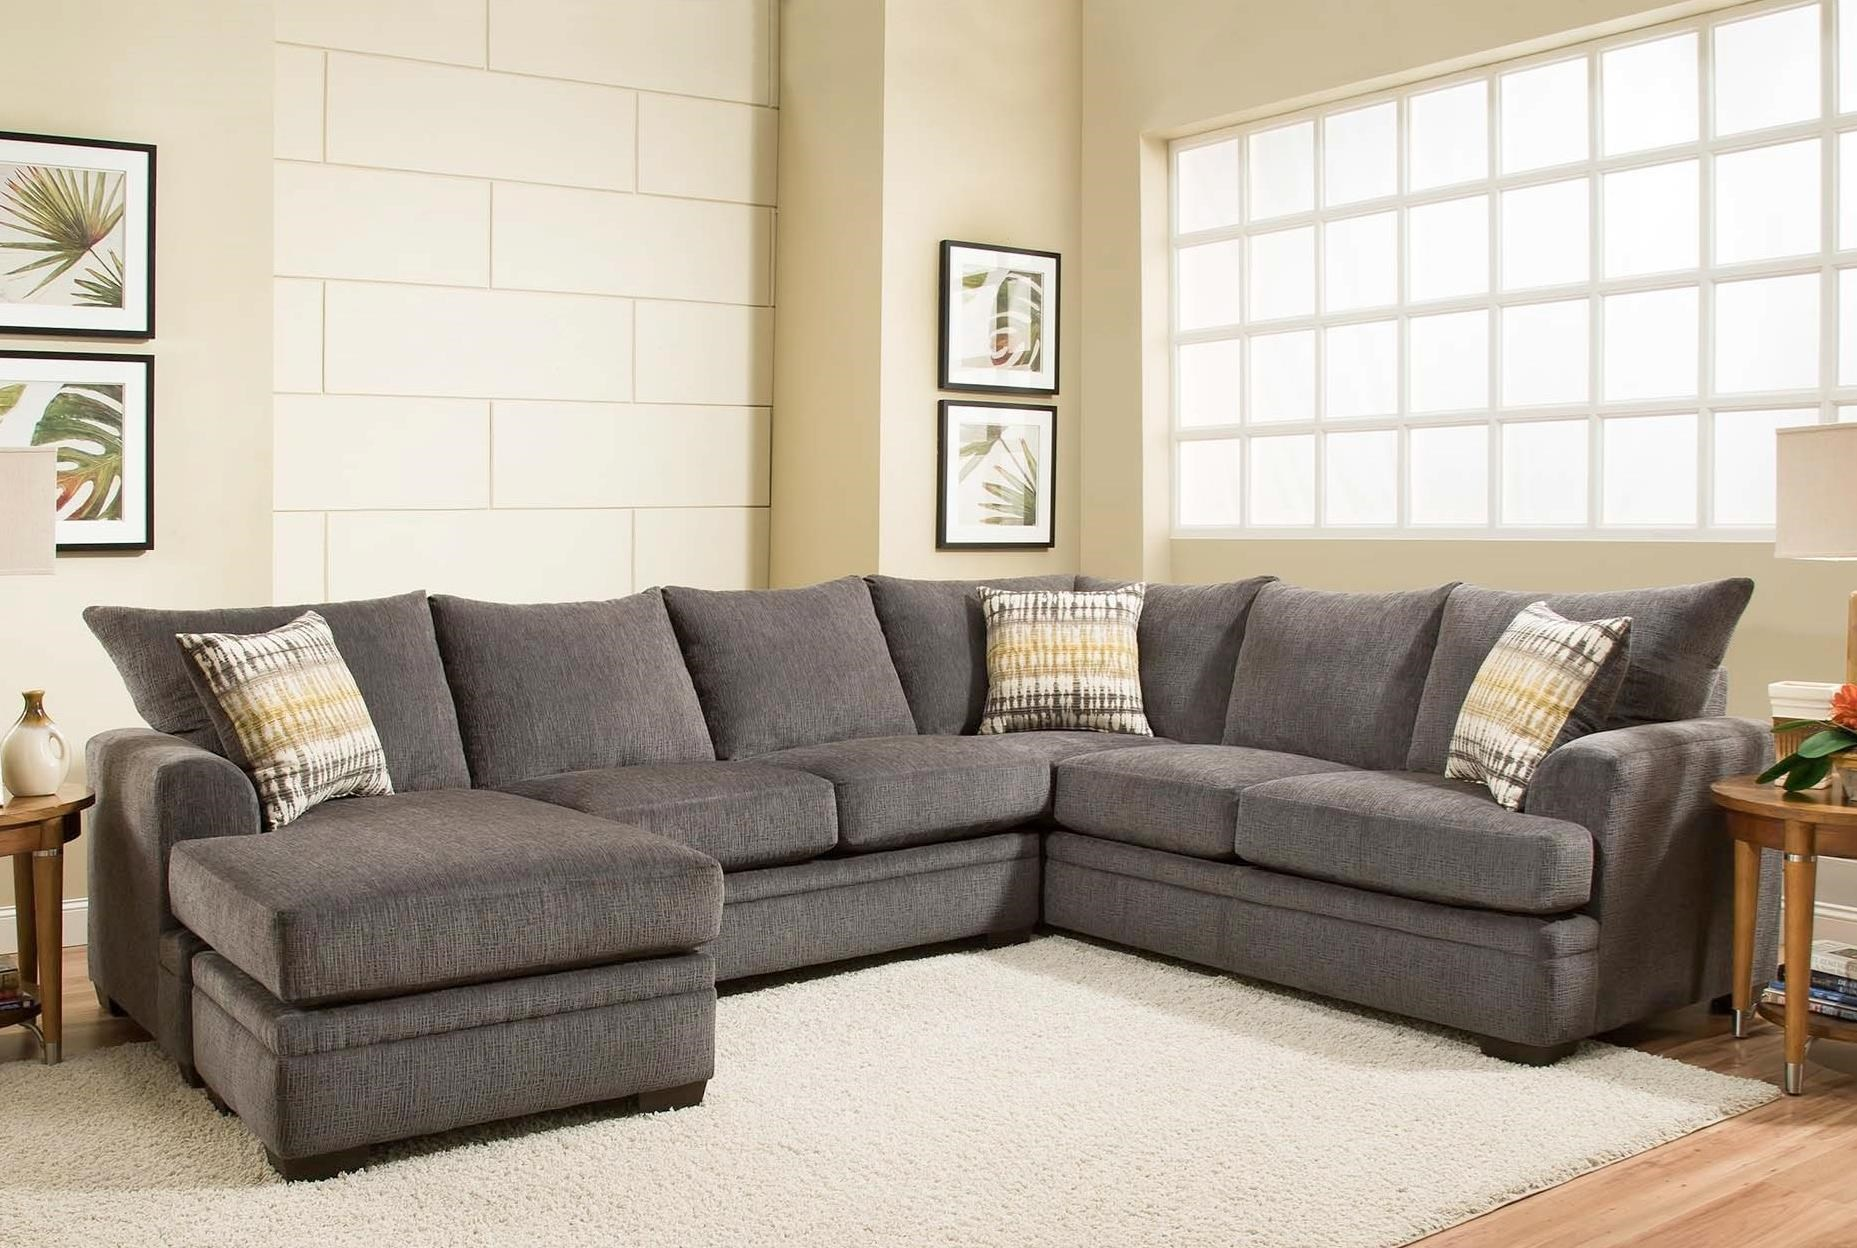 American furniture 6800 sectional sofa with left side for American home furniture couches